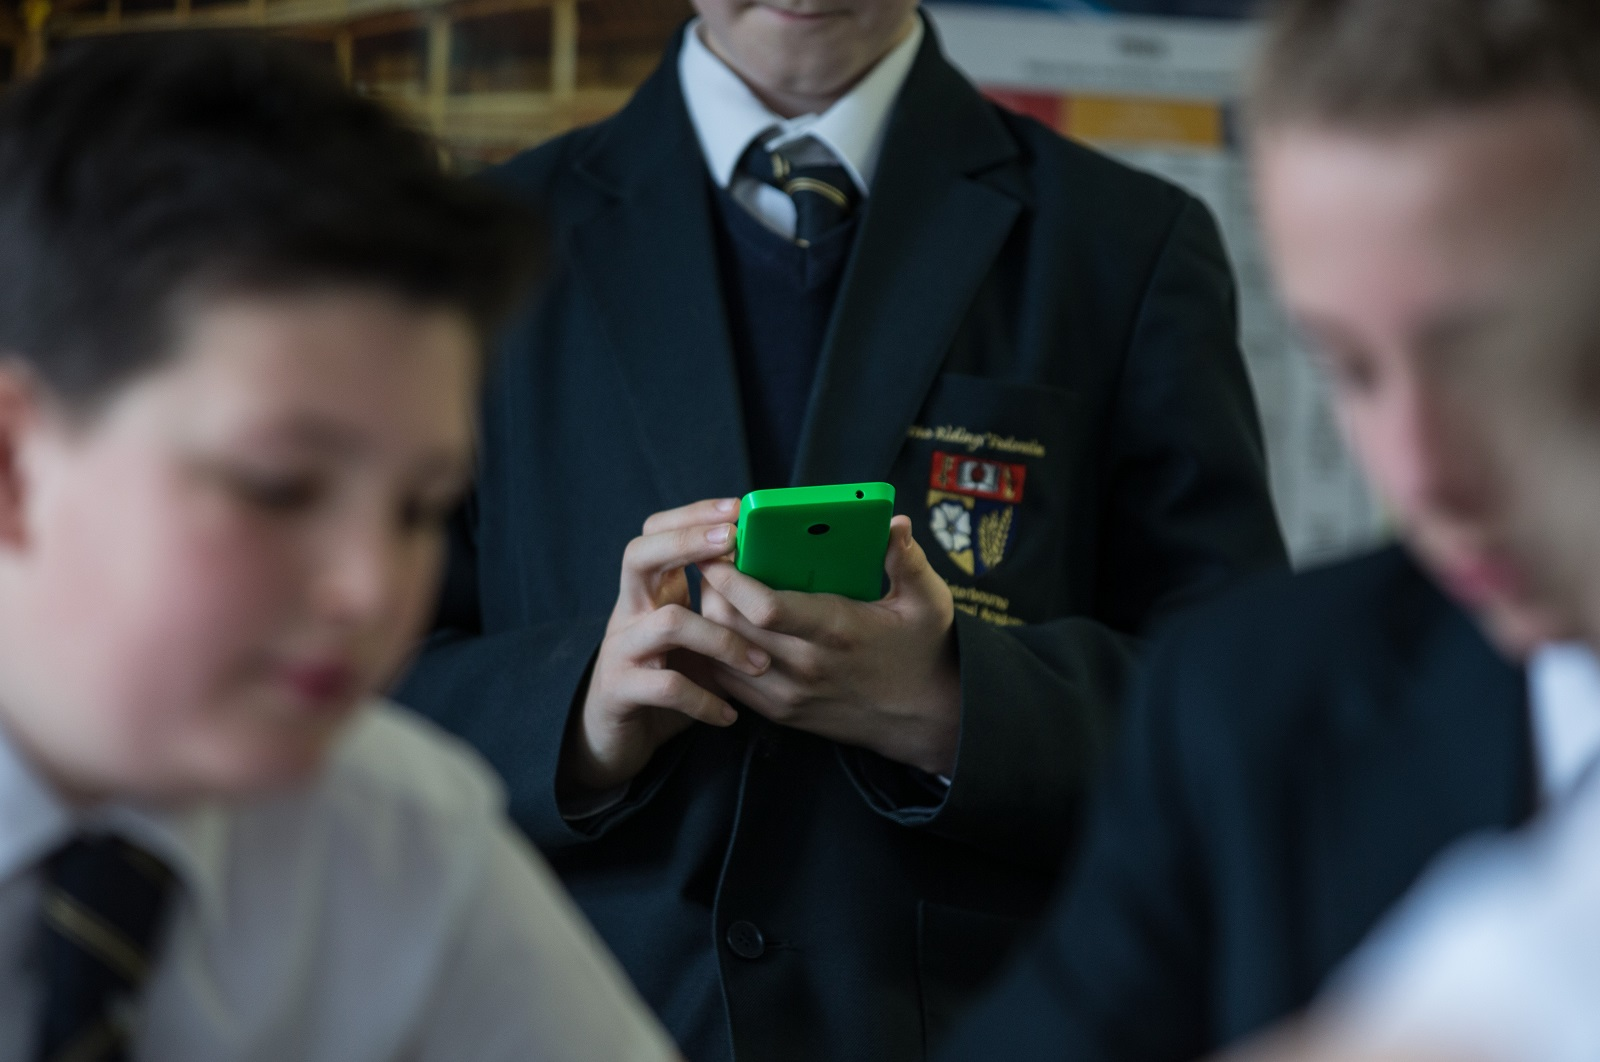 handphone usage should be banned in schools